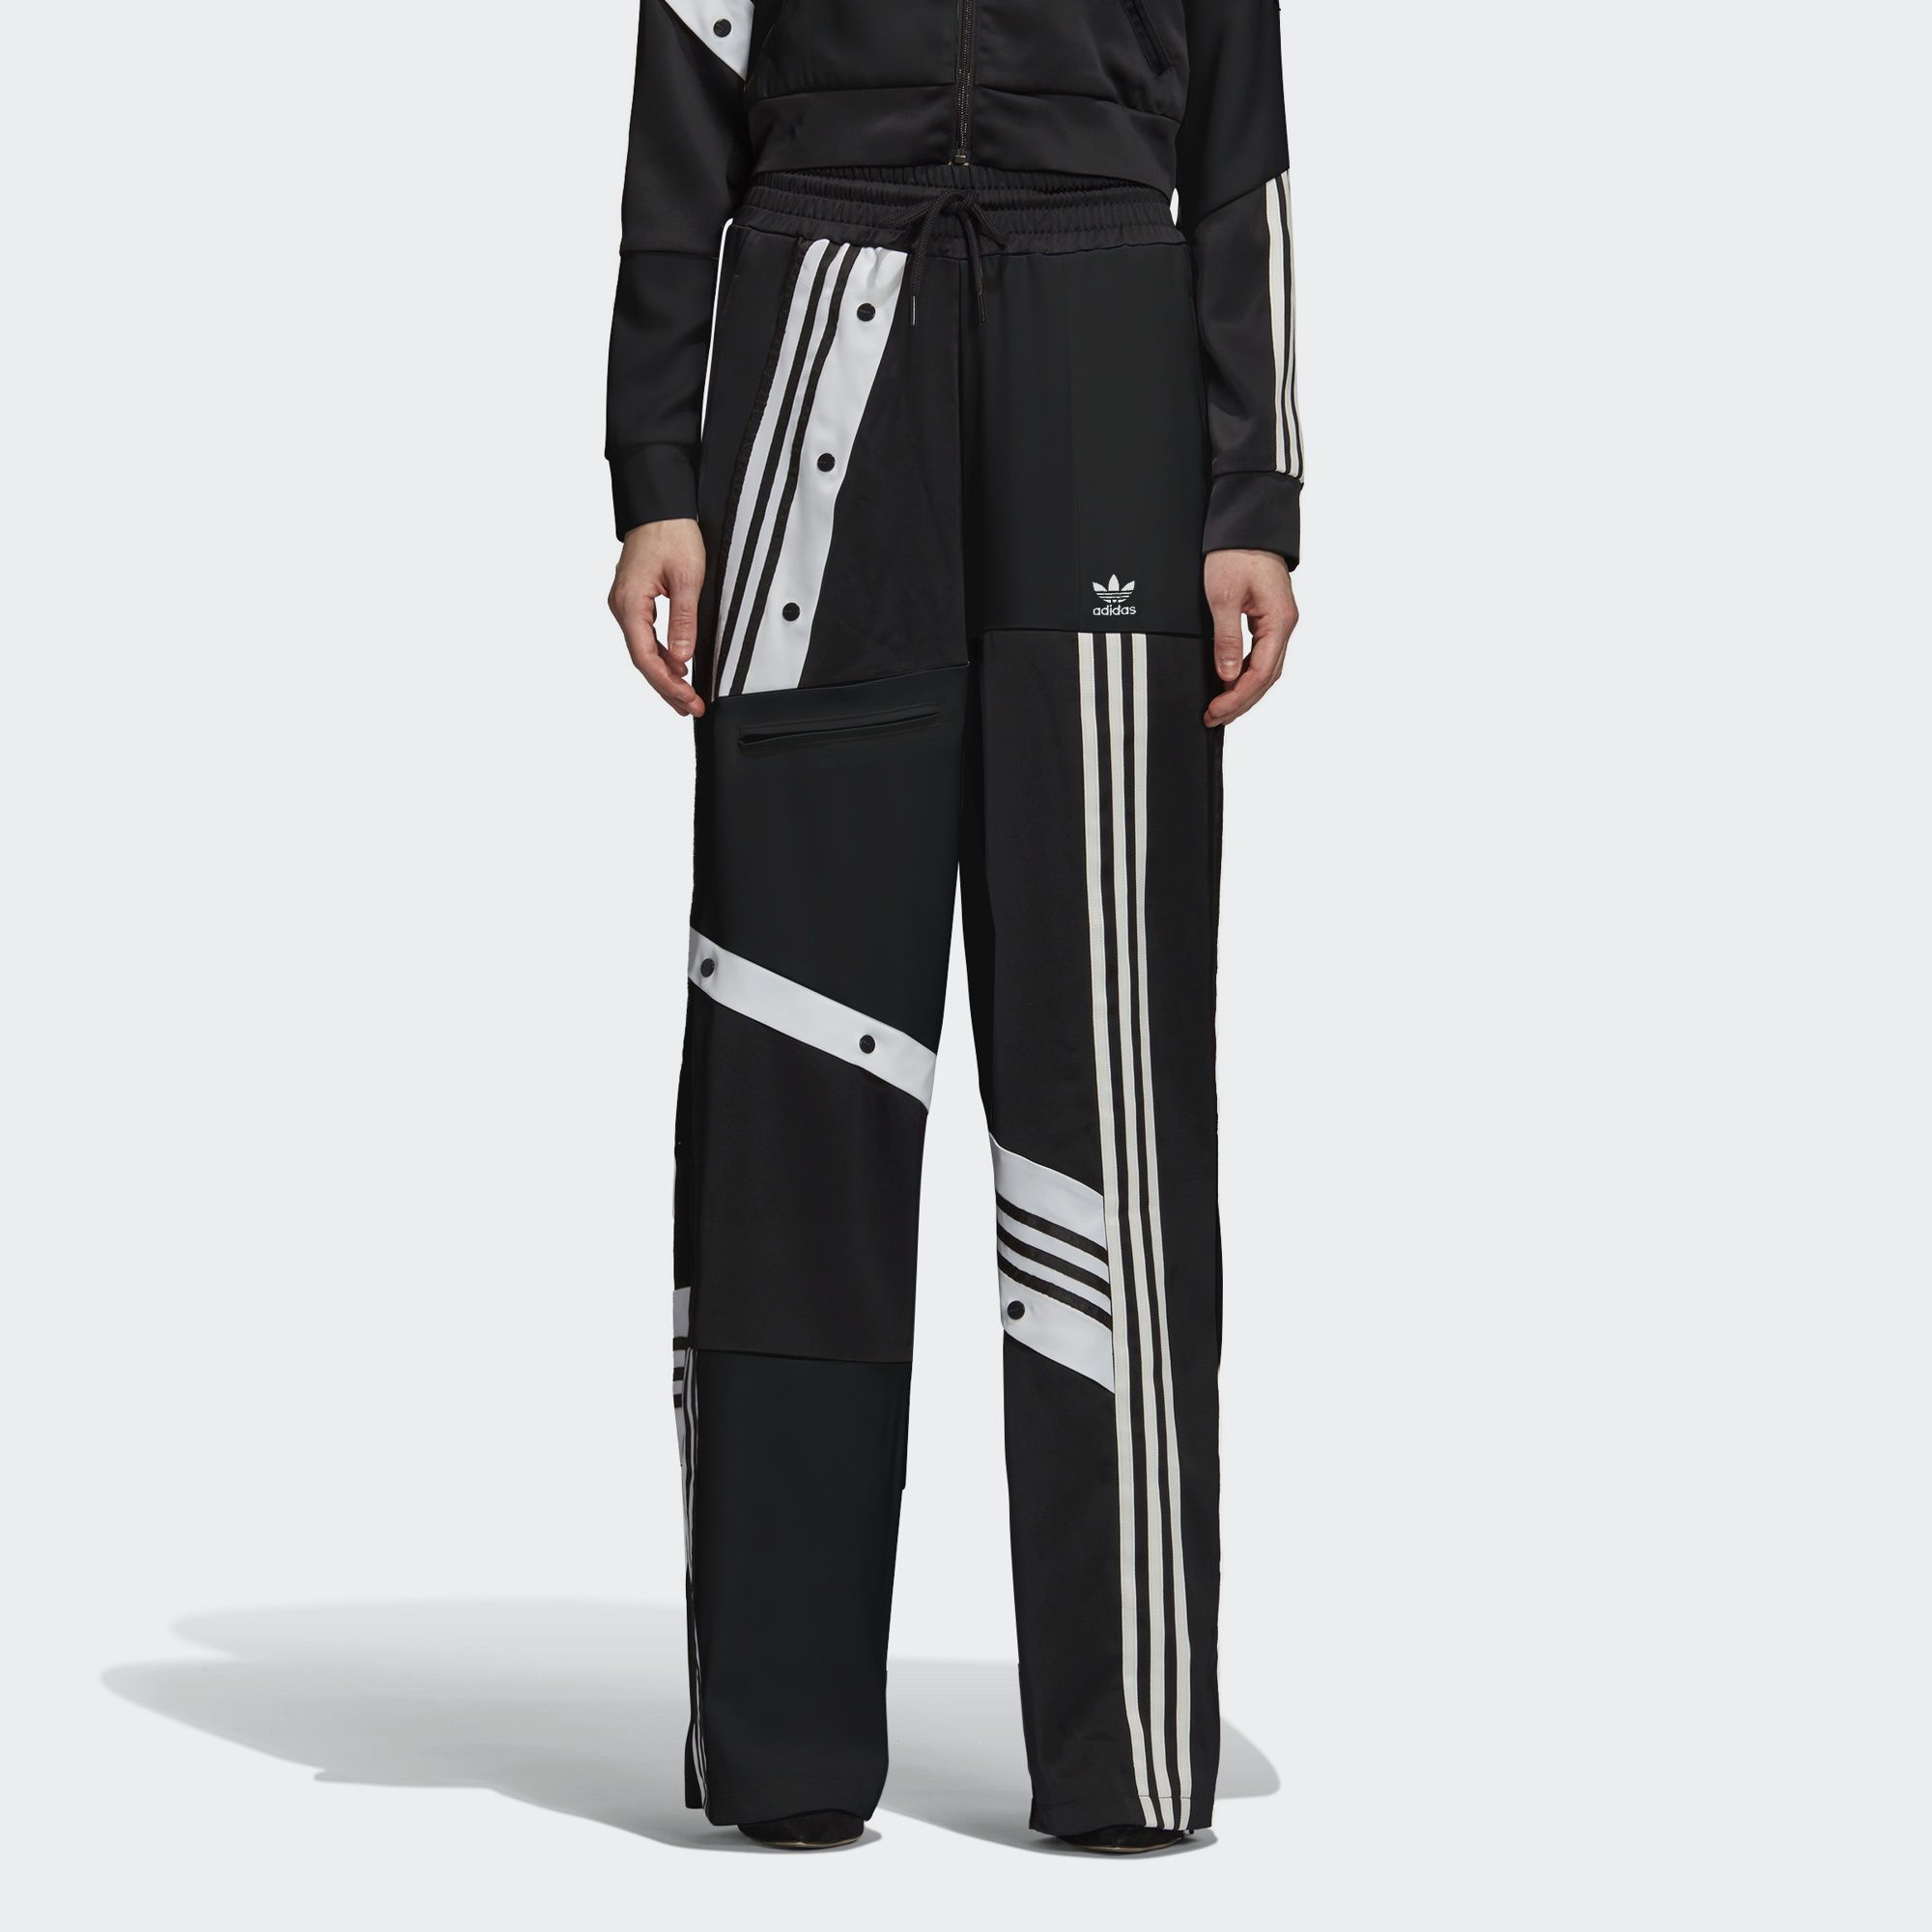 0dbf7f6e28 Danielle Cathari Deconstructed Track Pants by Adidas ...